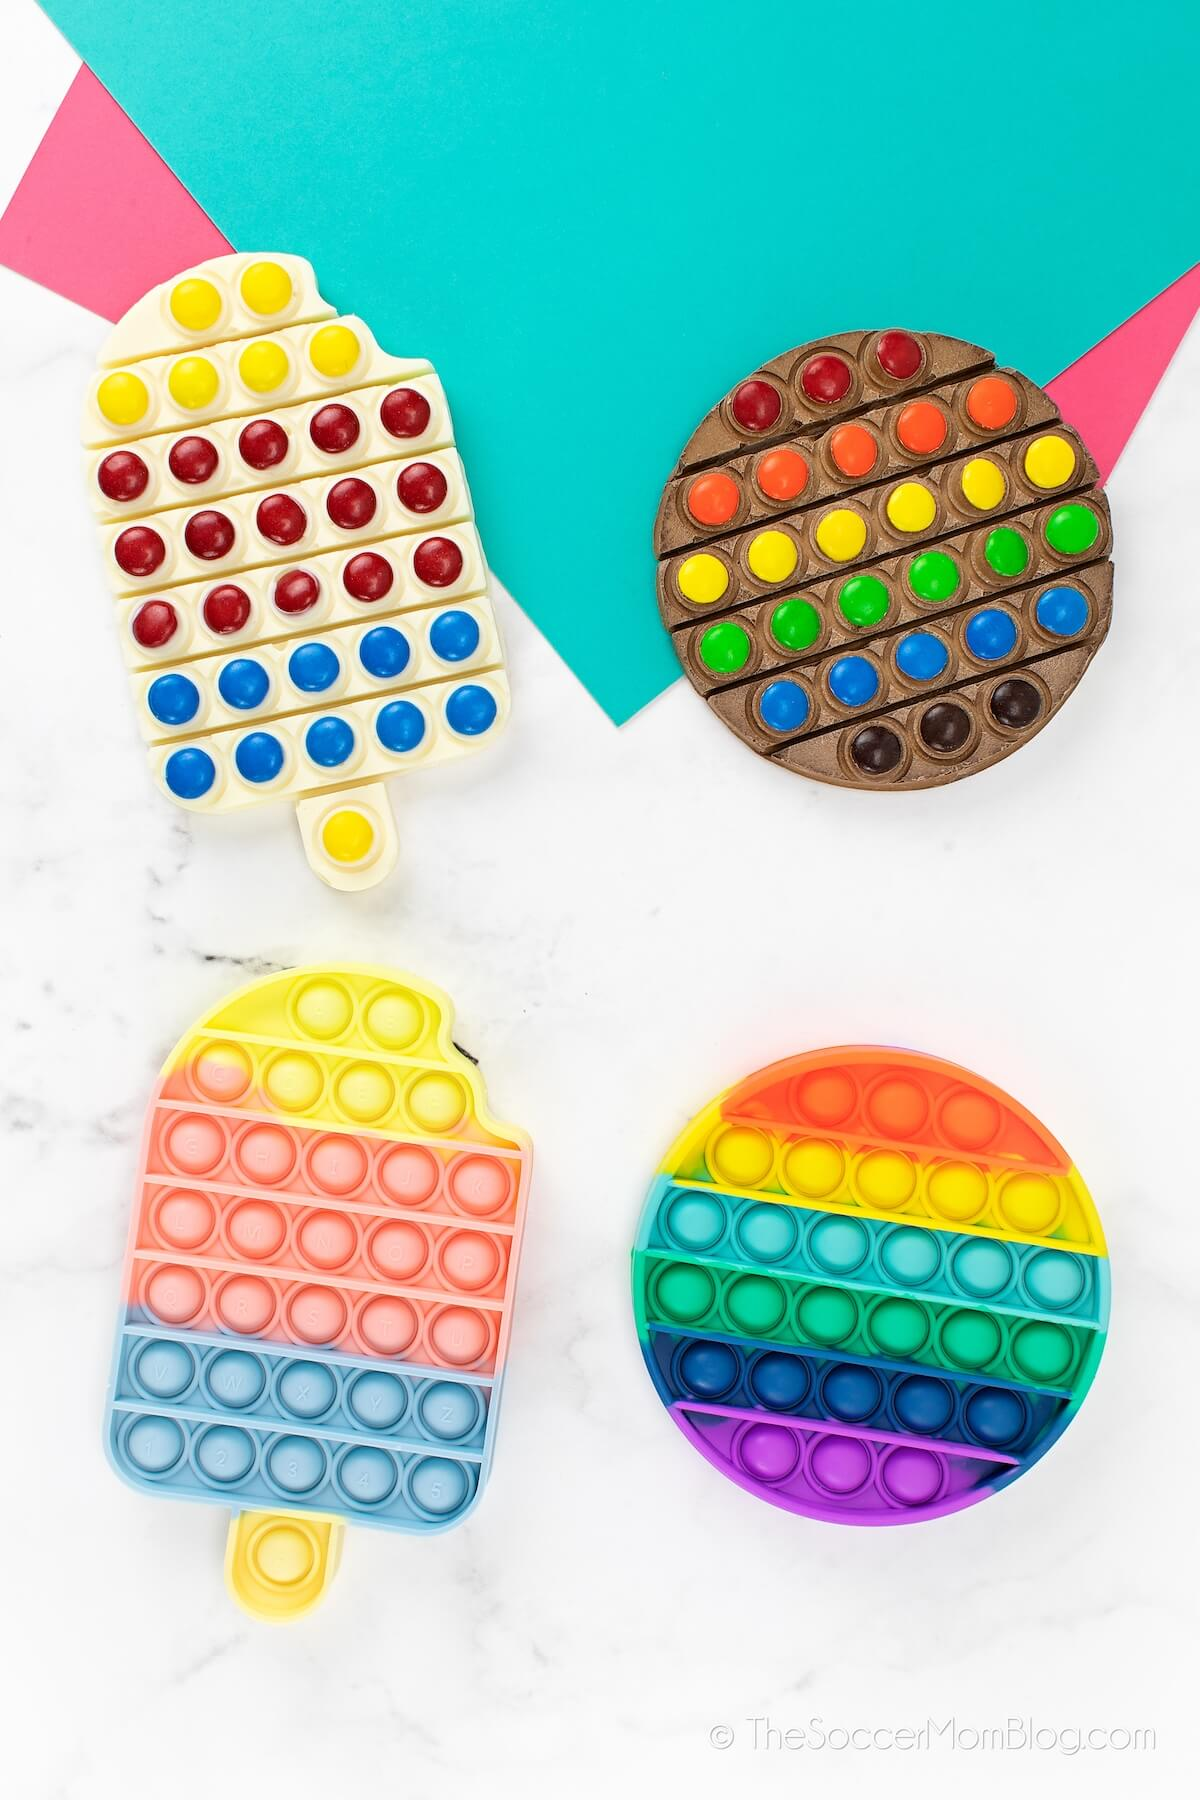 chocolate bars made using pop-it fidget toys as a candy mold